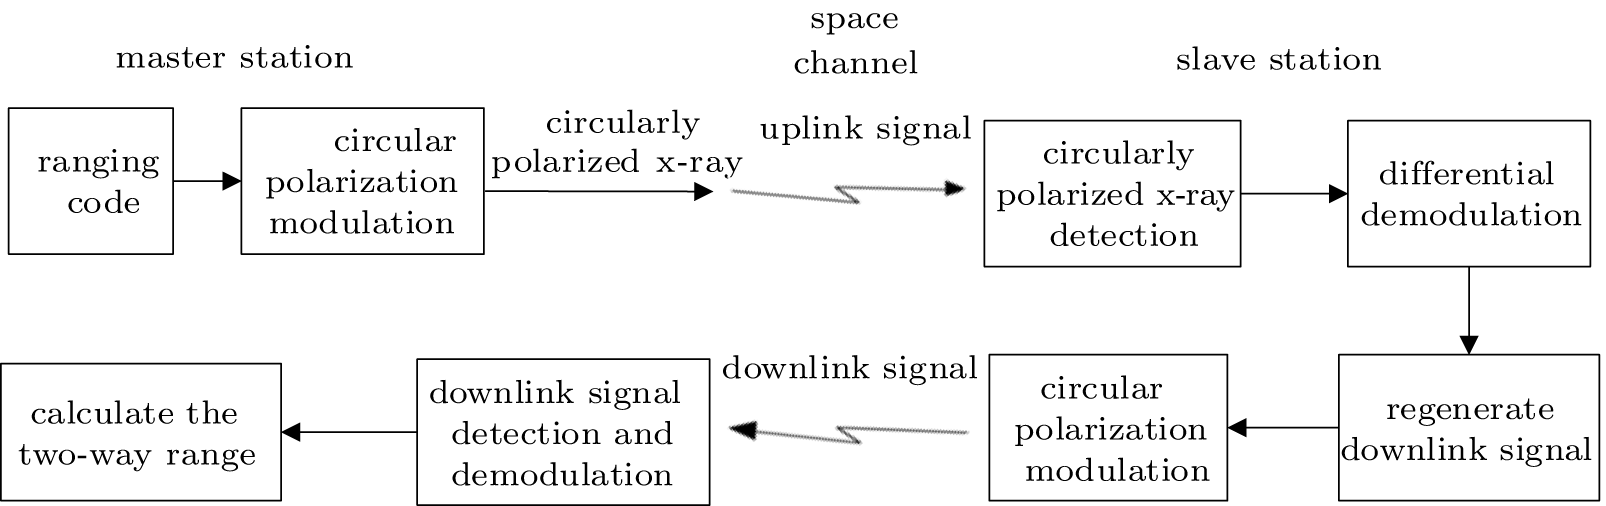 hight resolution of block diagram of xcpolr system